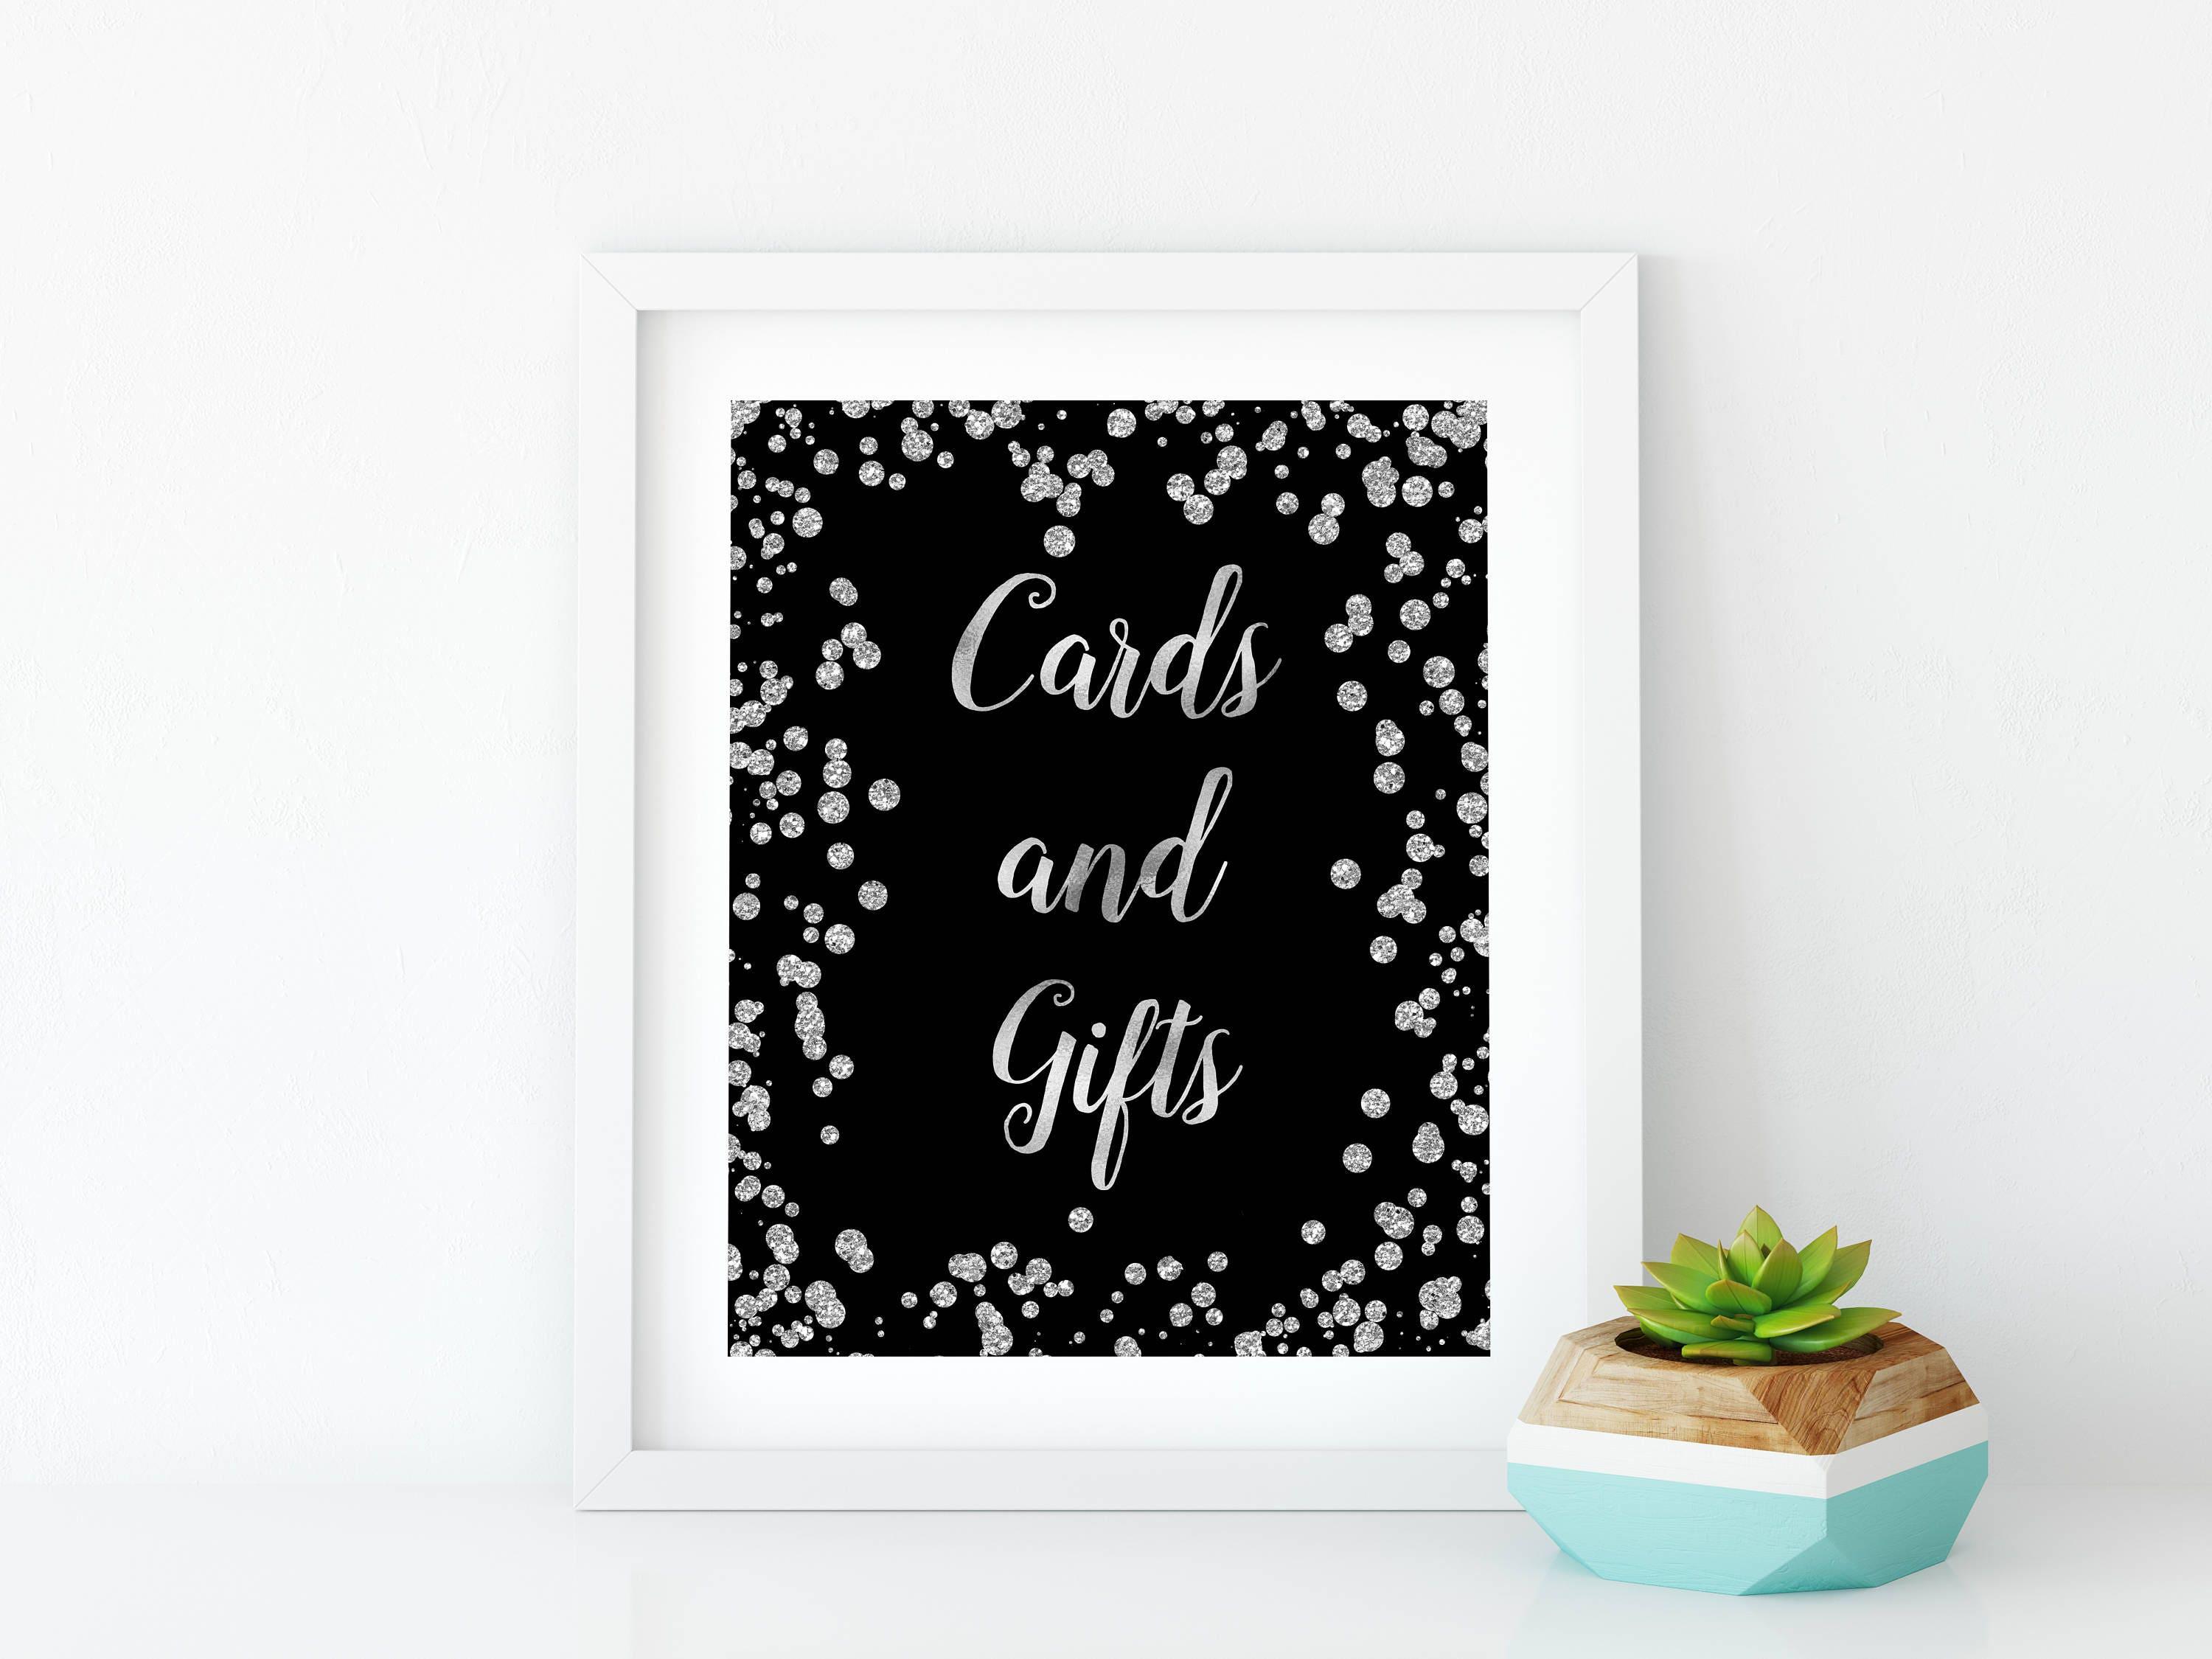 Cards and gifts silver sign Silver party decorations Black and